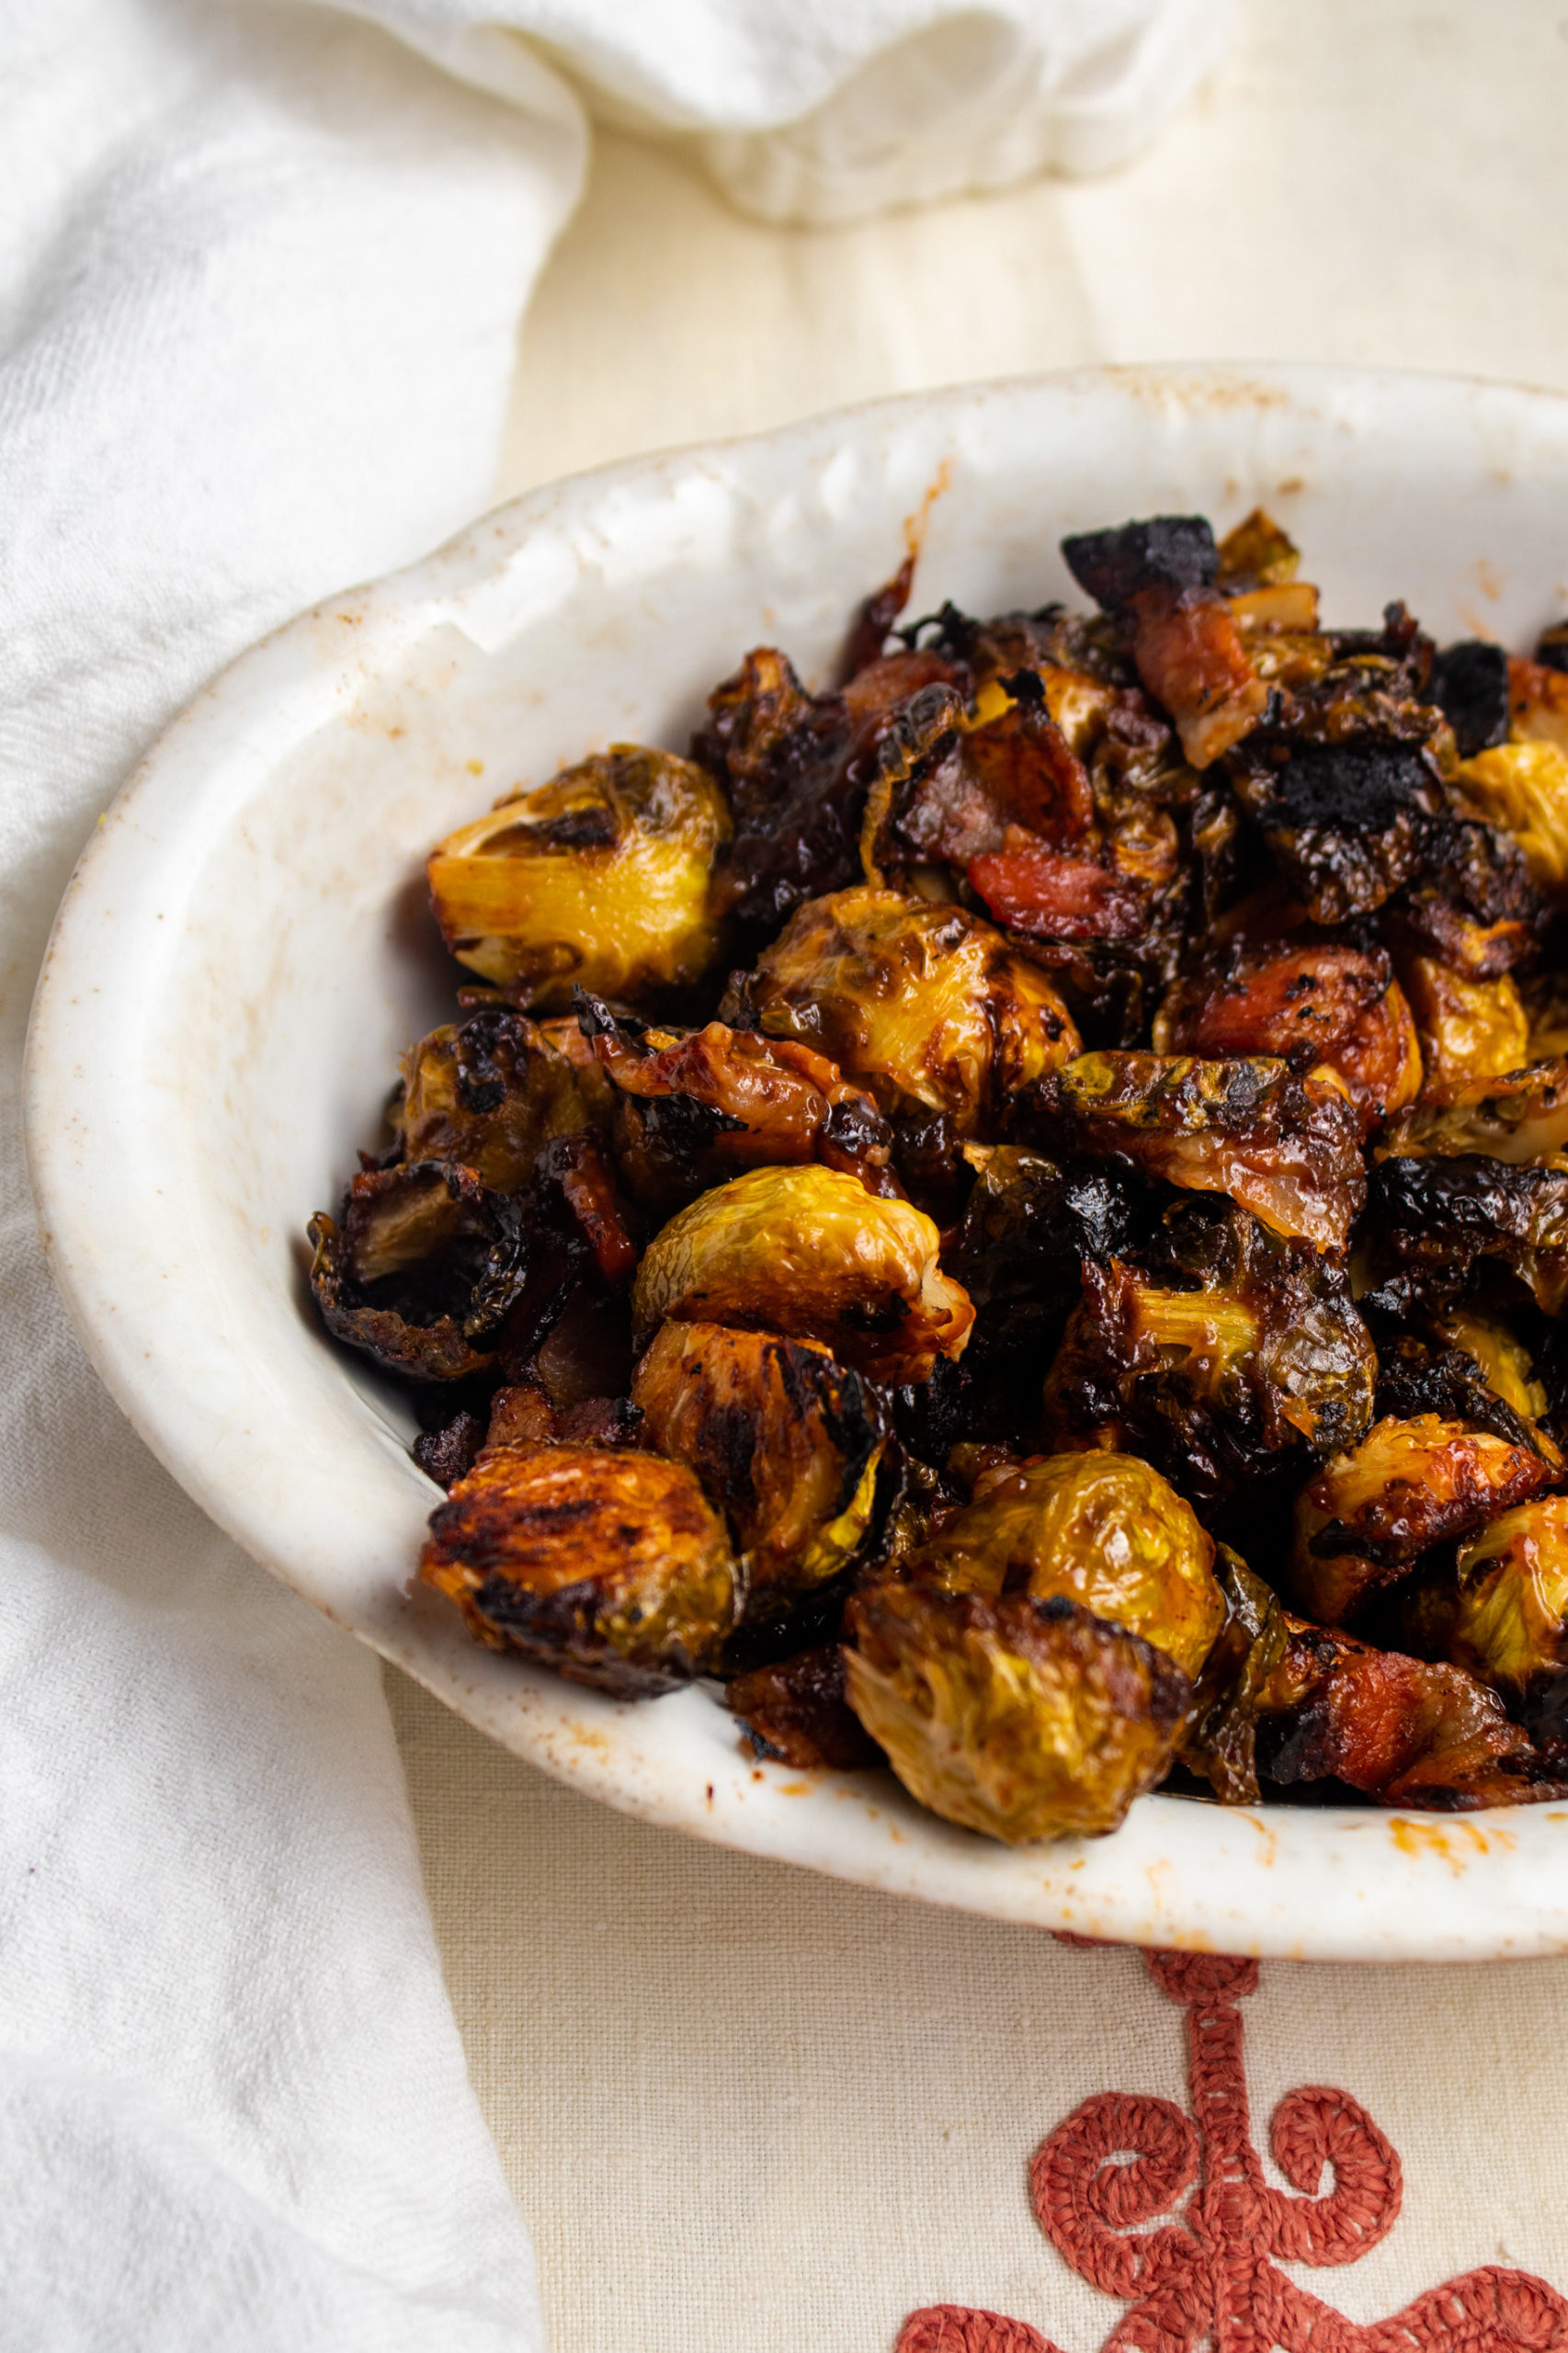 Brussel sprouts are roasted in the oven with bacon and a bbq glaze until crisp and caramelized. Learn how to make the best crispy bacon brussel sprouts.